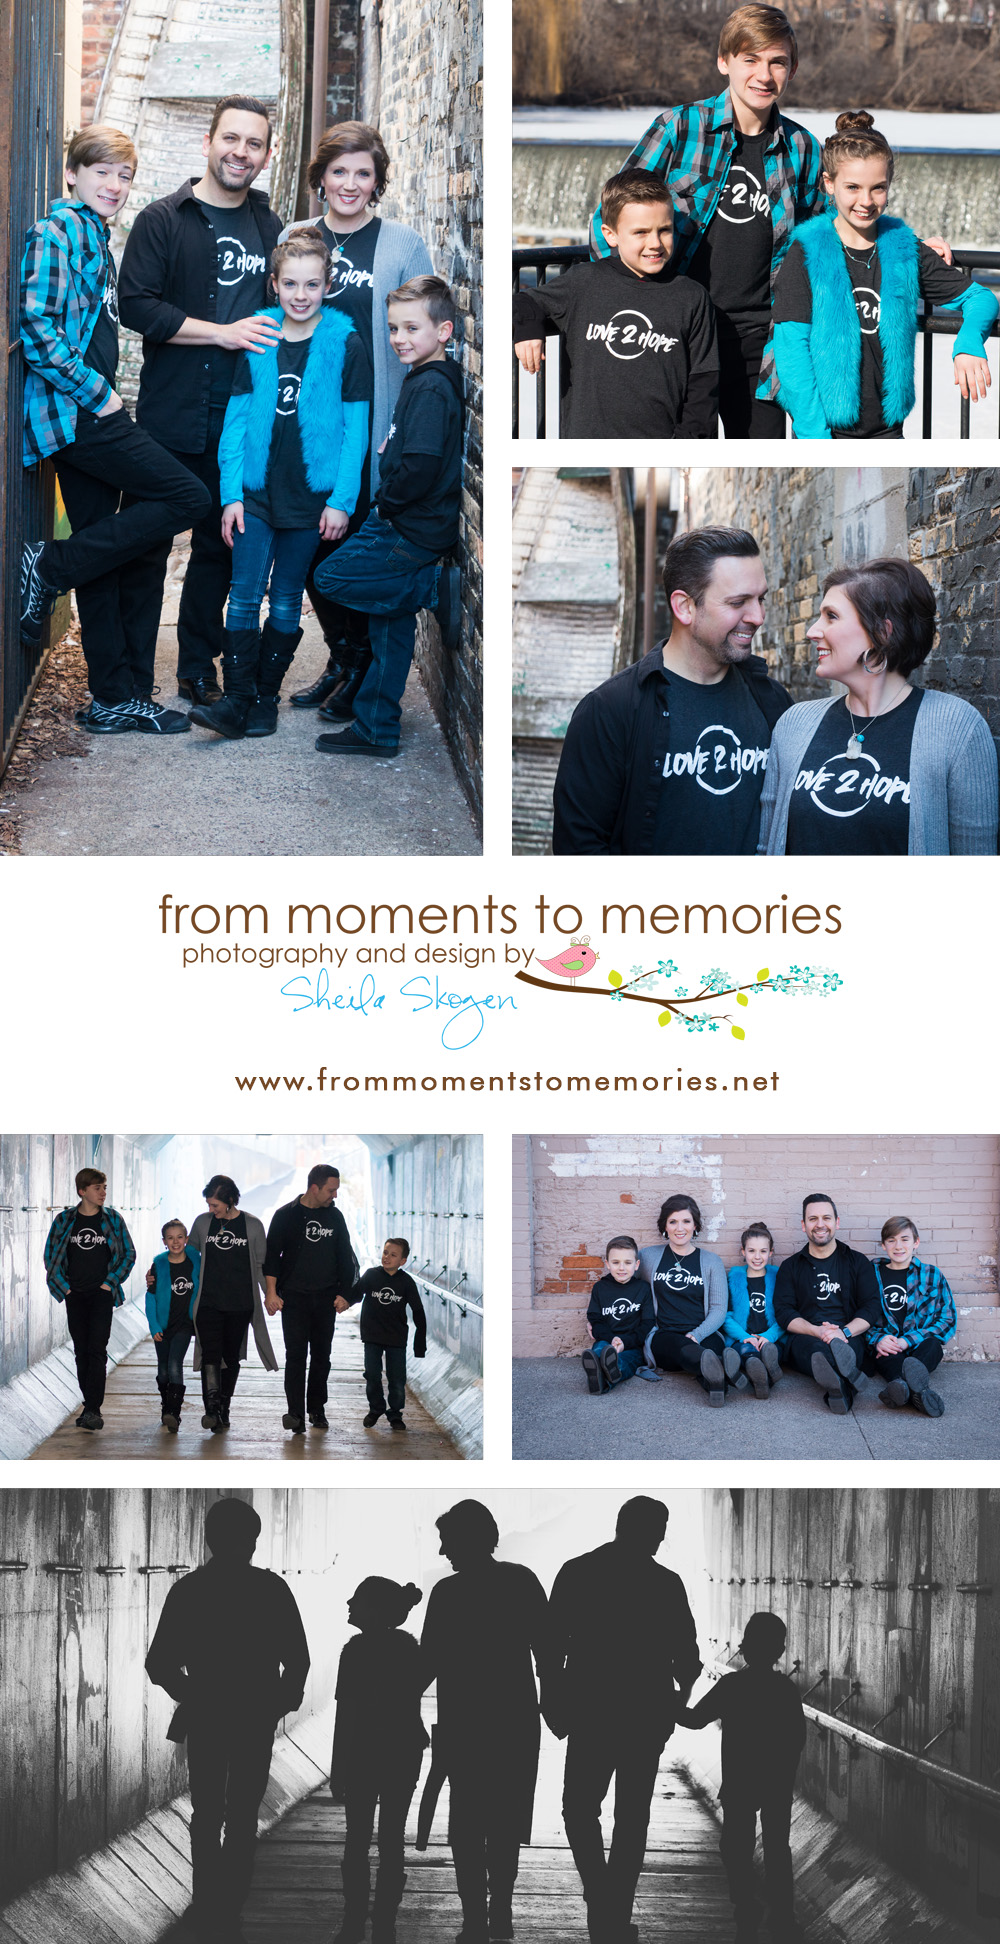 elk_river_family_children_photographer_from_moments_to_memories_photography_by_sheila_skogen_modern_professional_family_children_pictures_downtown_anoka